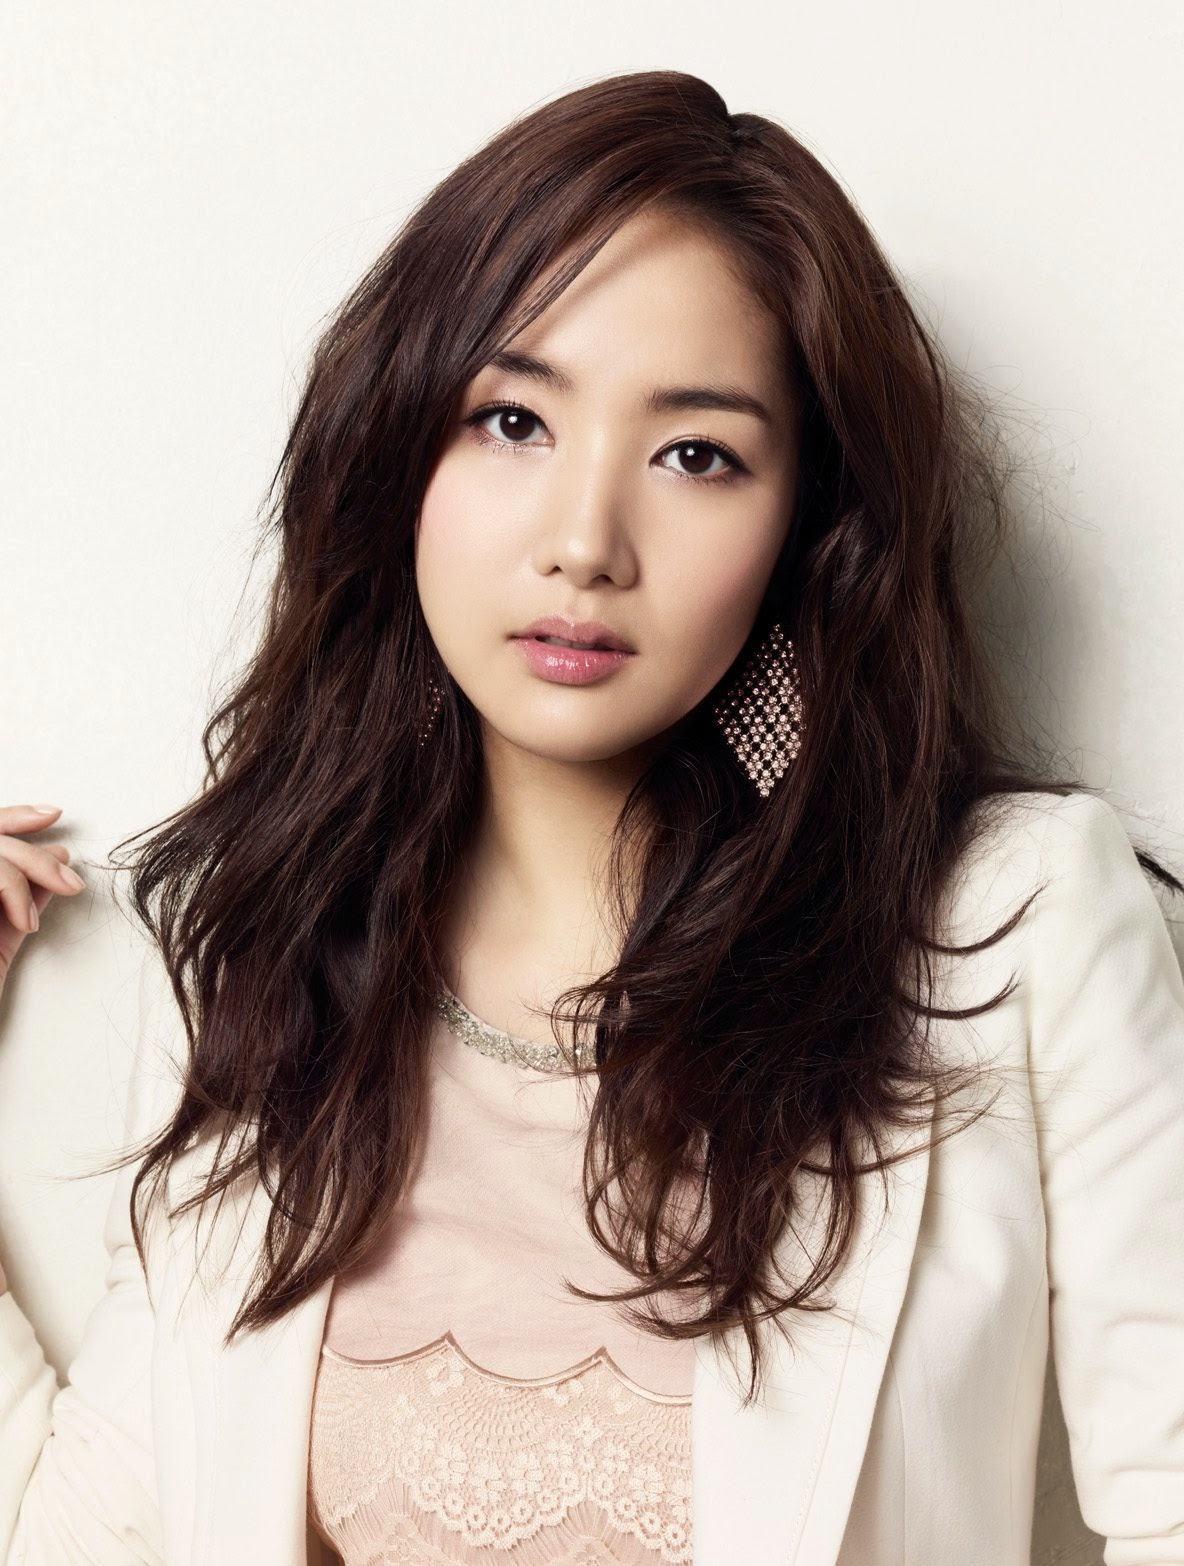 Park Min-young photo 002